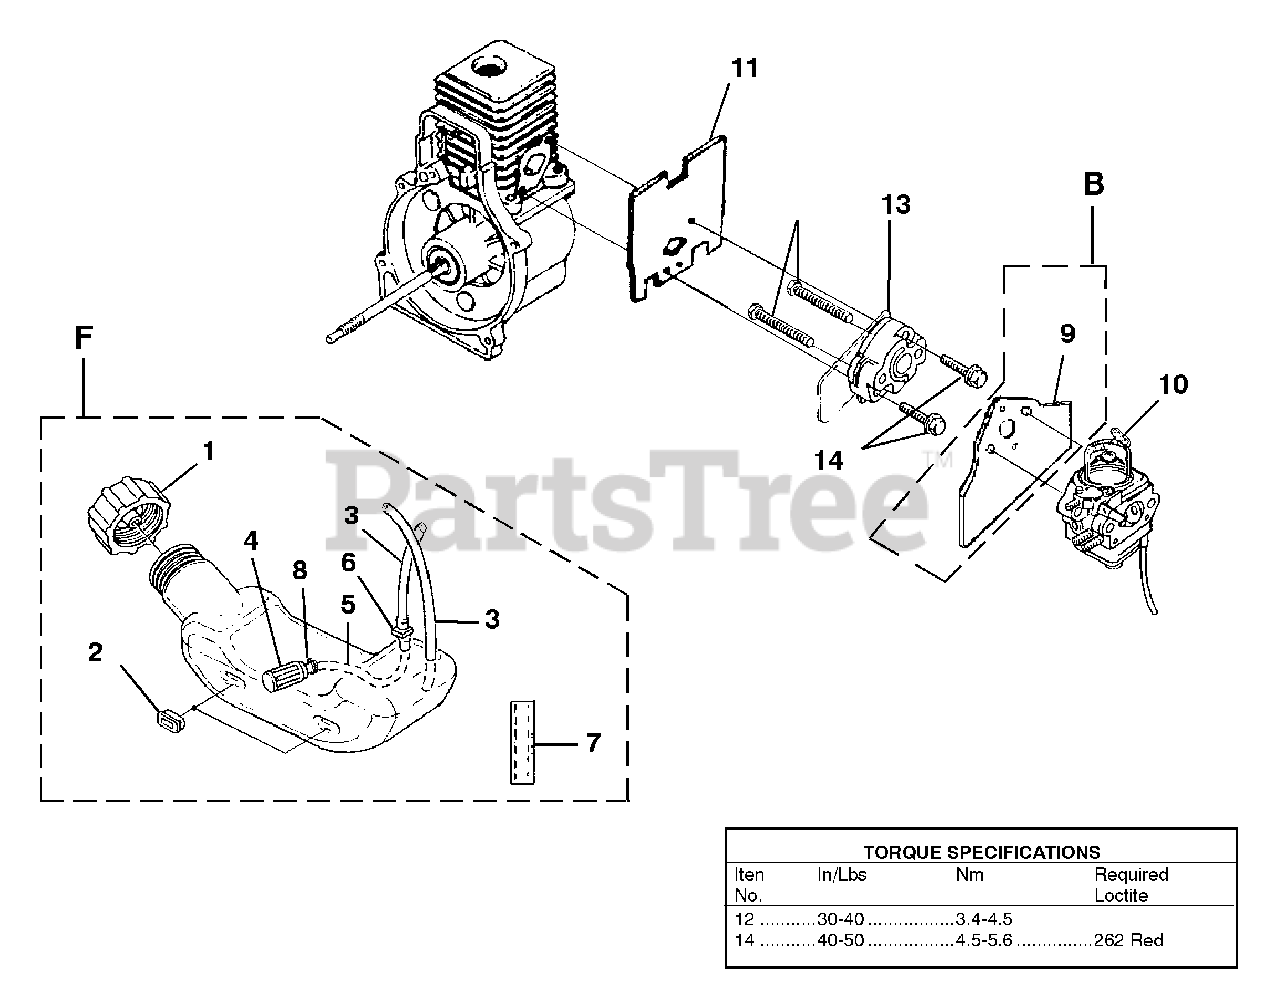 Homelite Parts On The Carburetor And Fuel Tank Diagram For